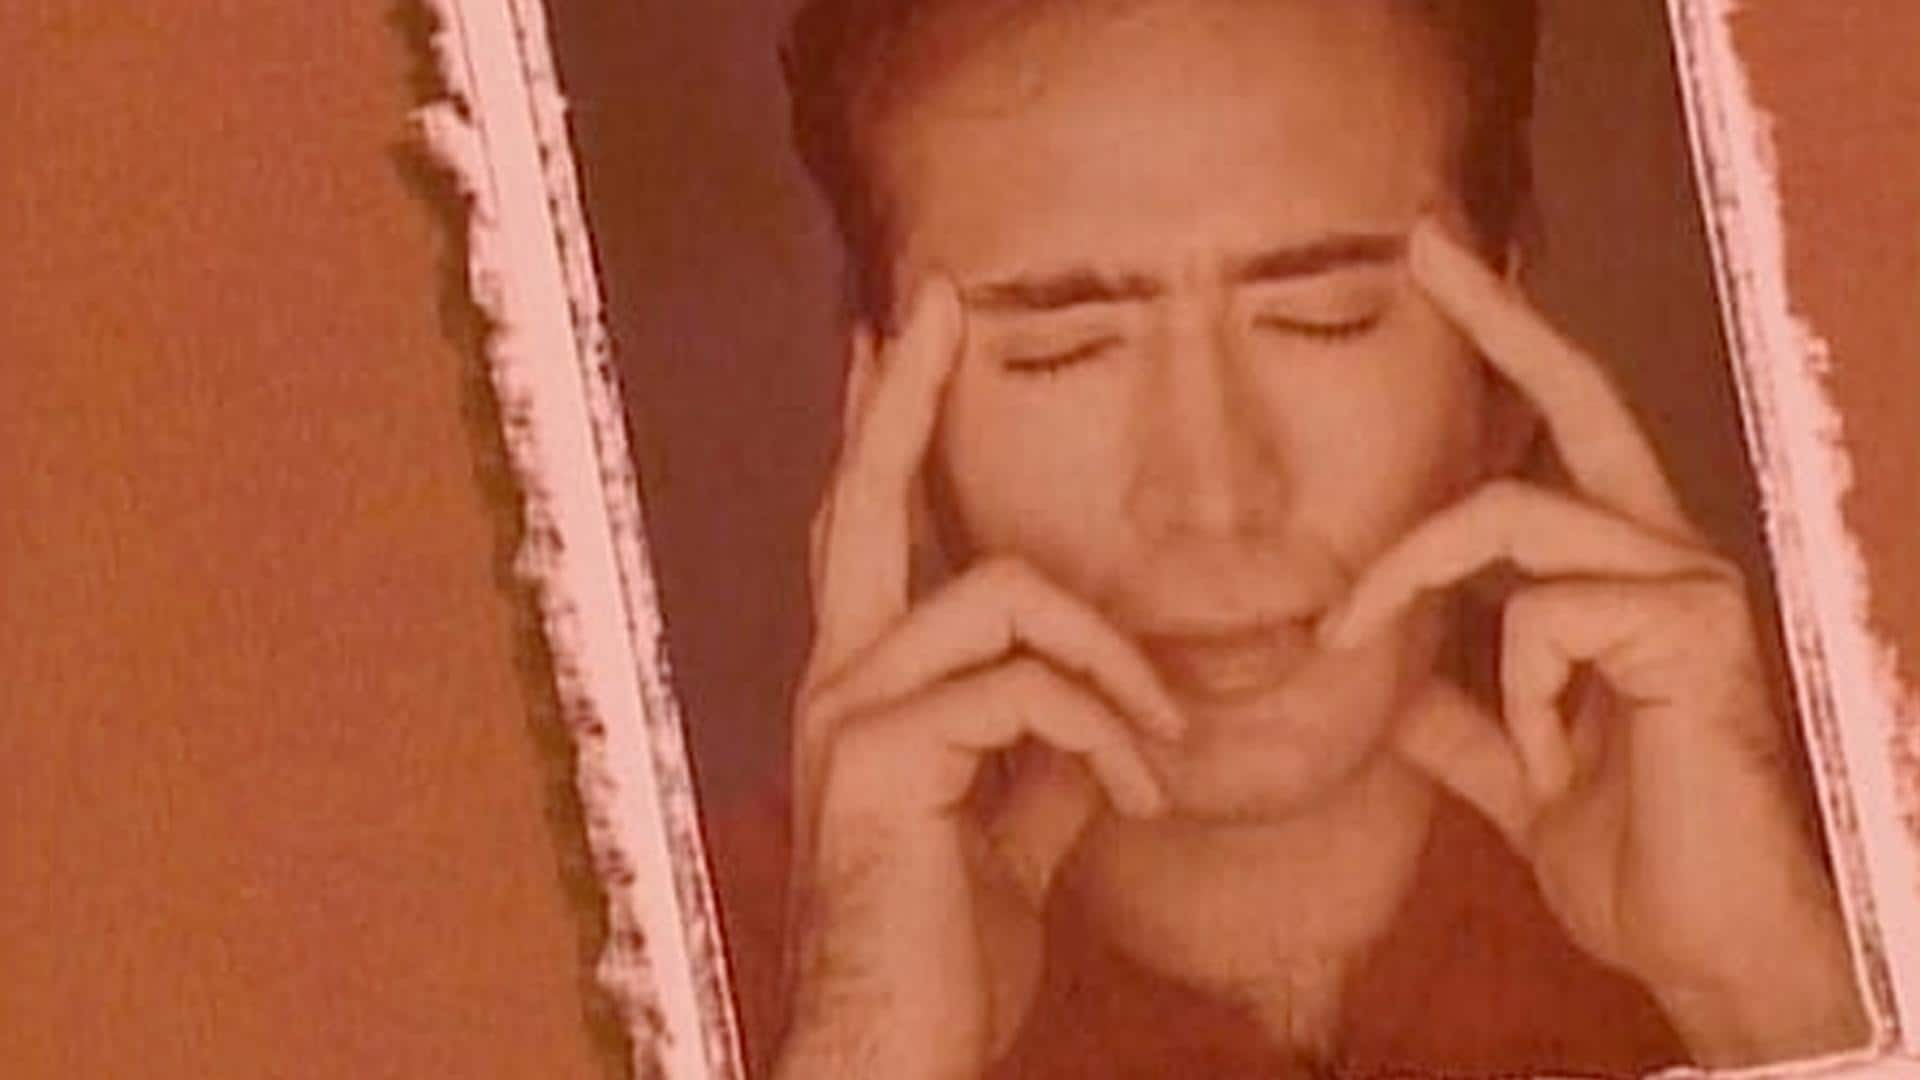 Nicolas Cage: September 26, 1992